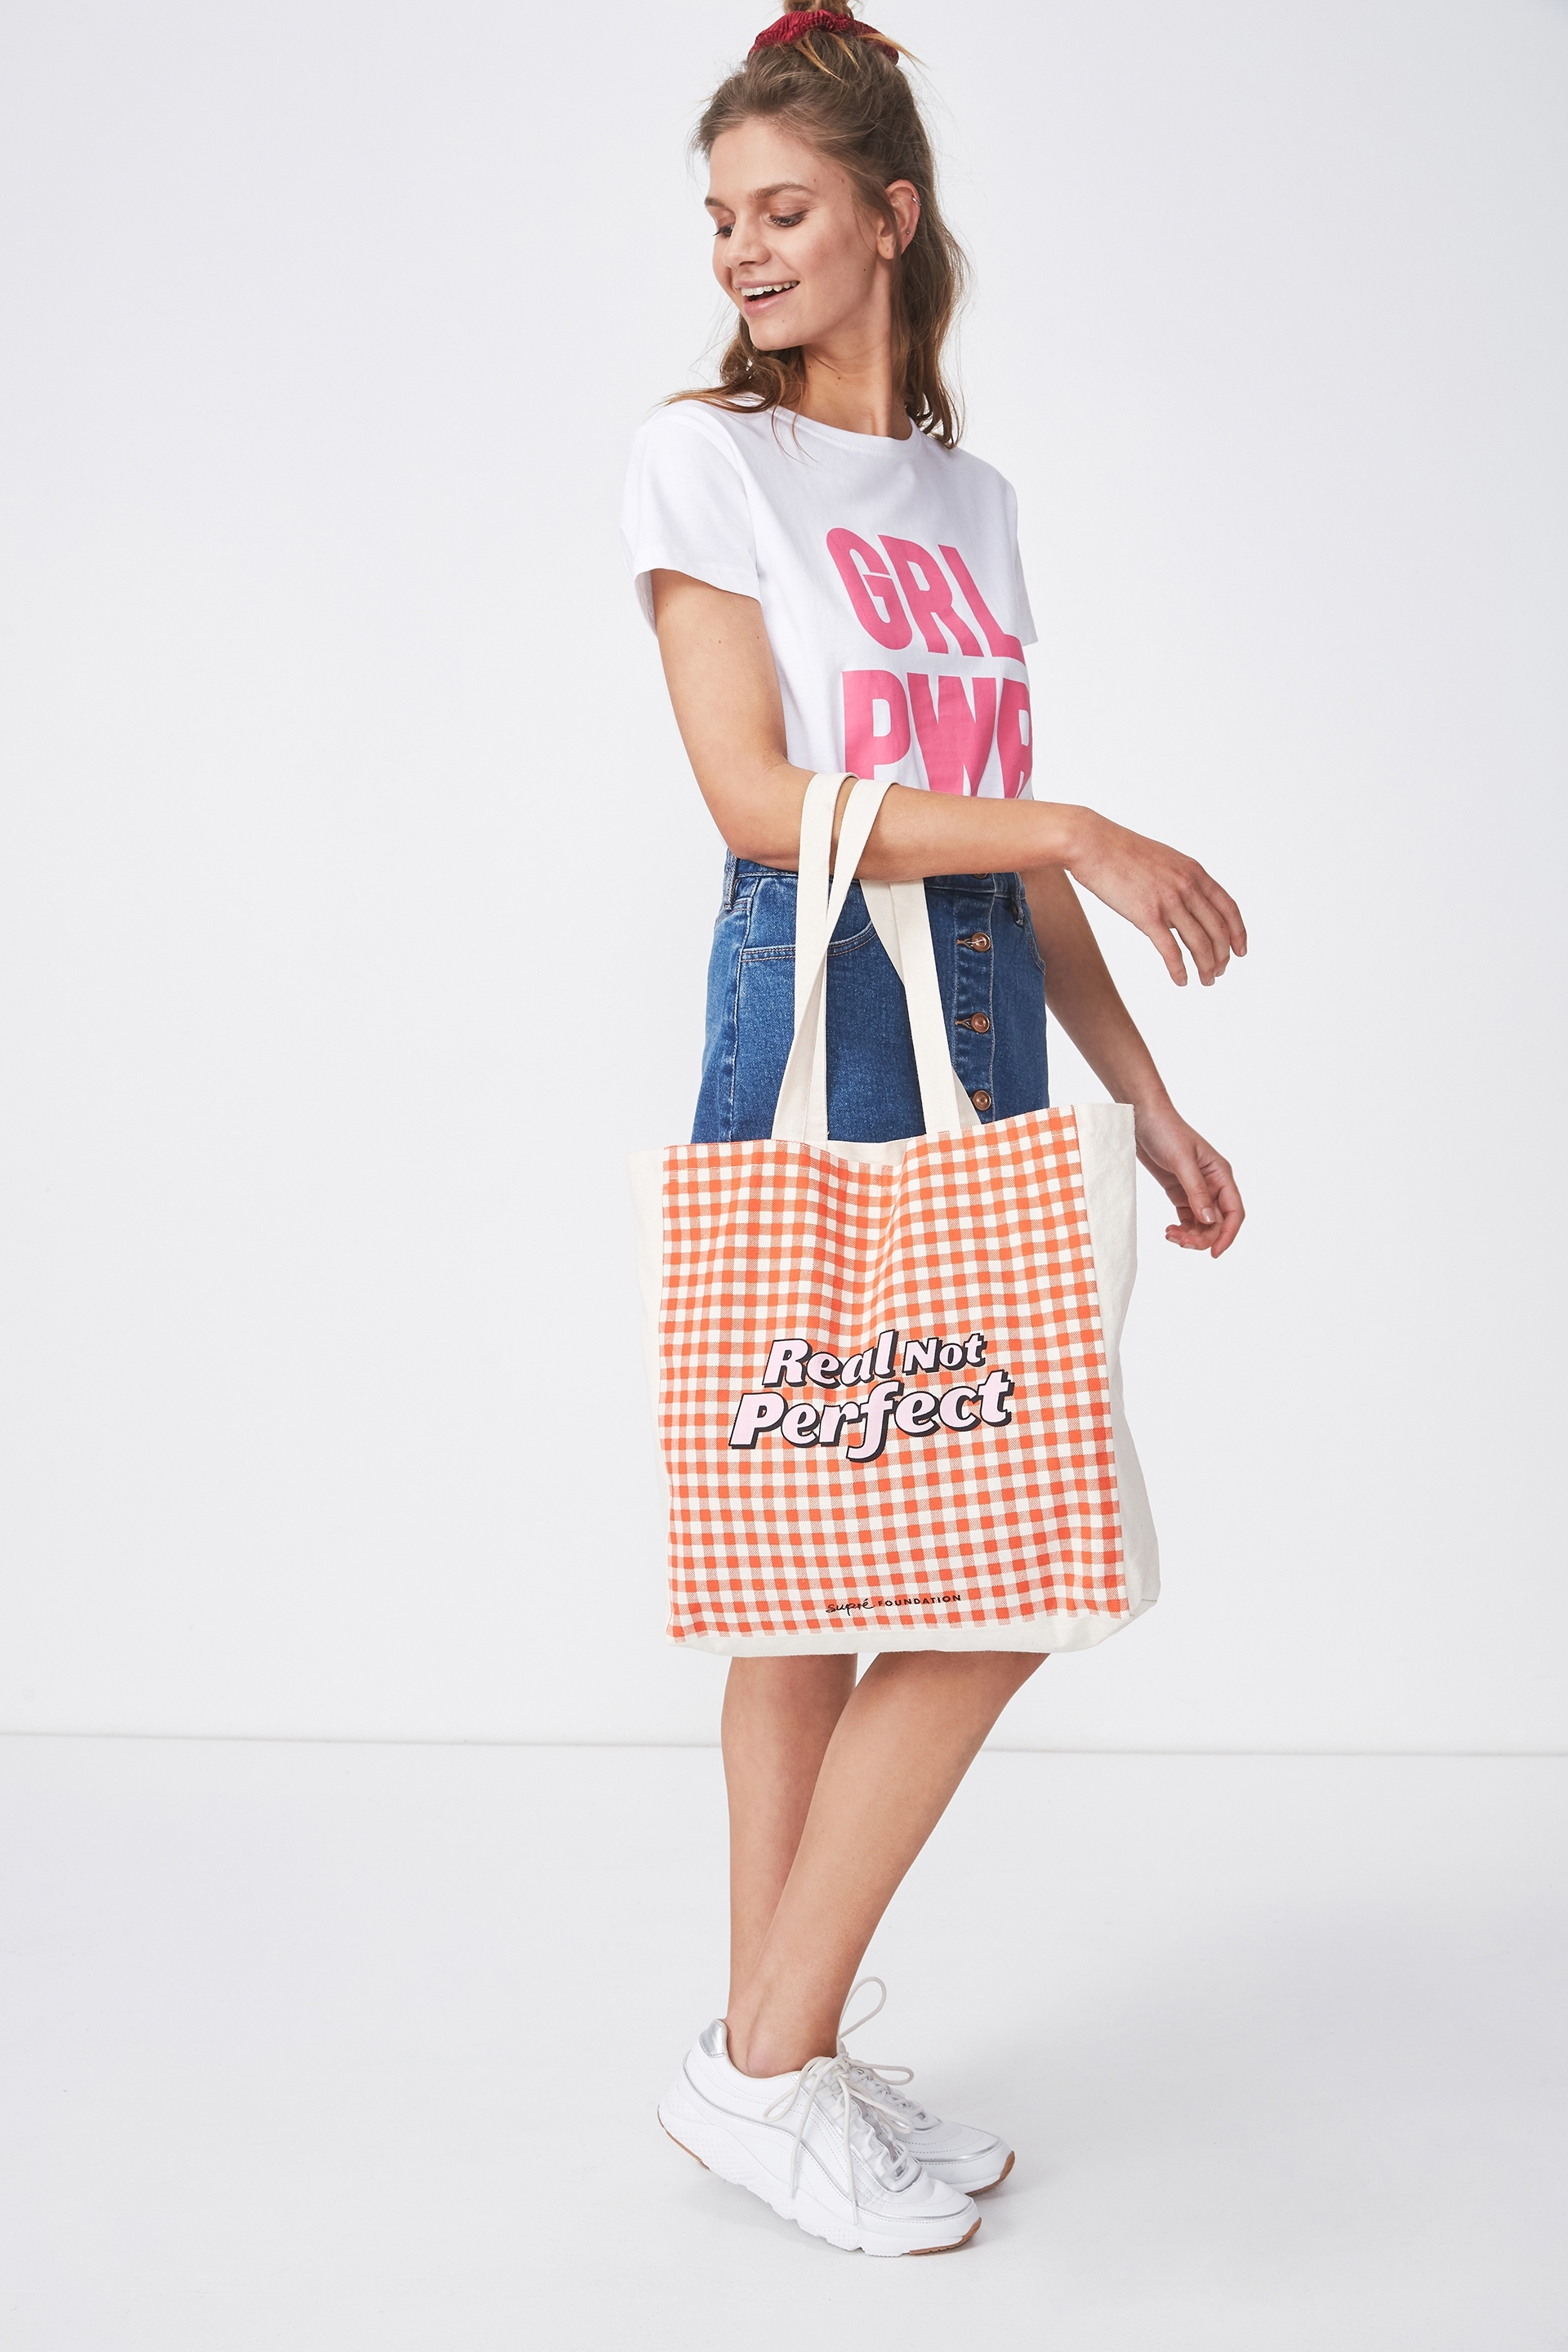 Supré Foundation - Supre Foundation Tote Bag - Real not perfect 9353699265283